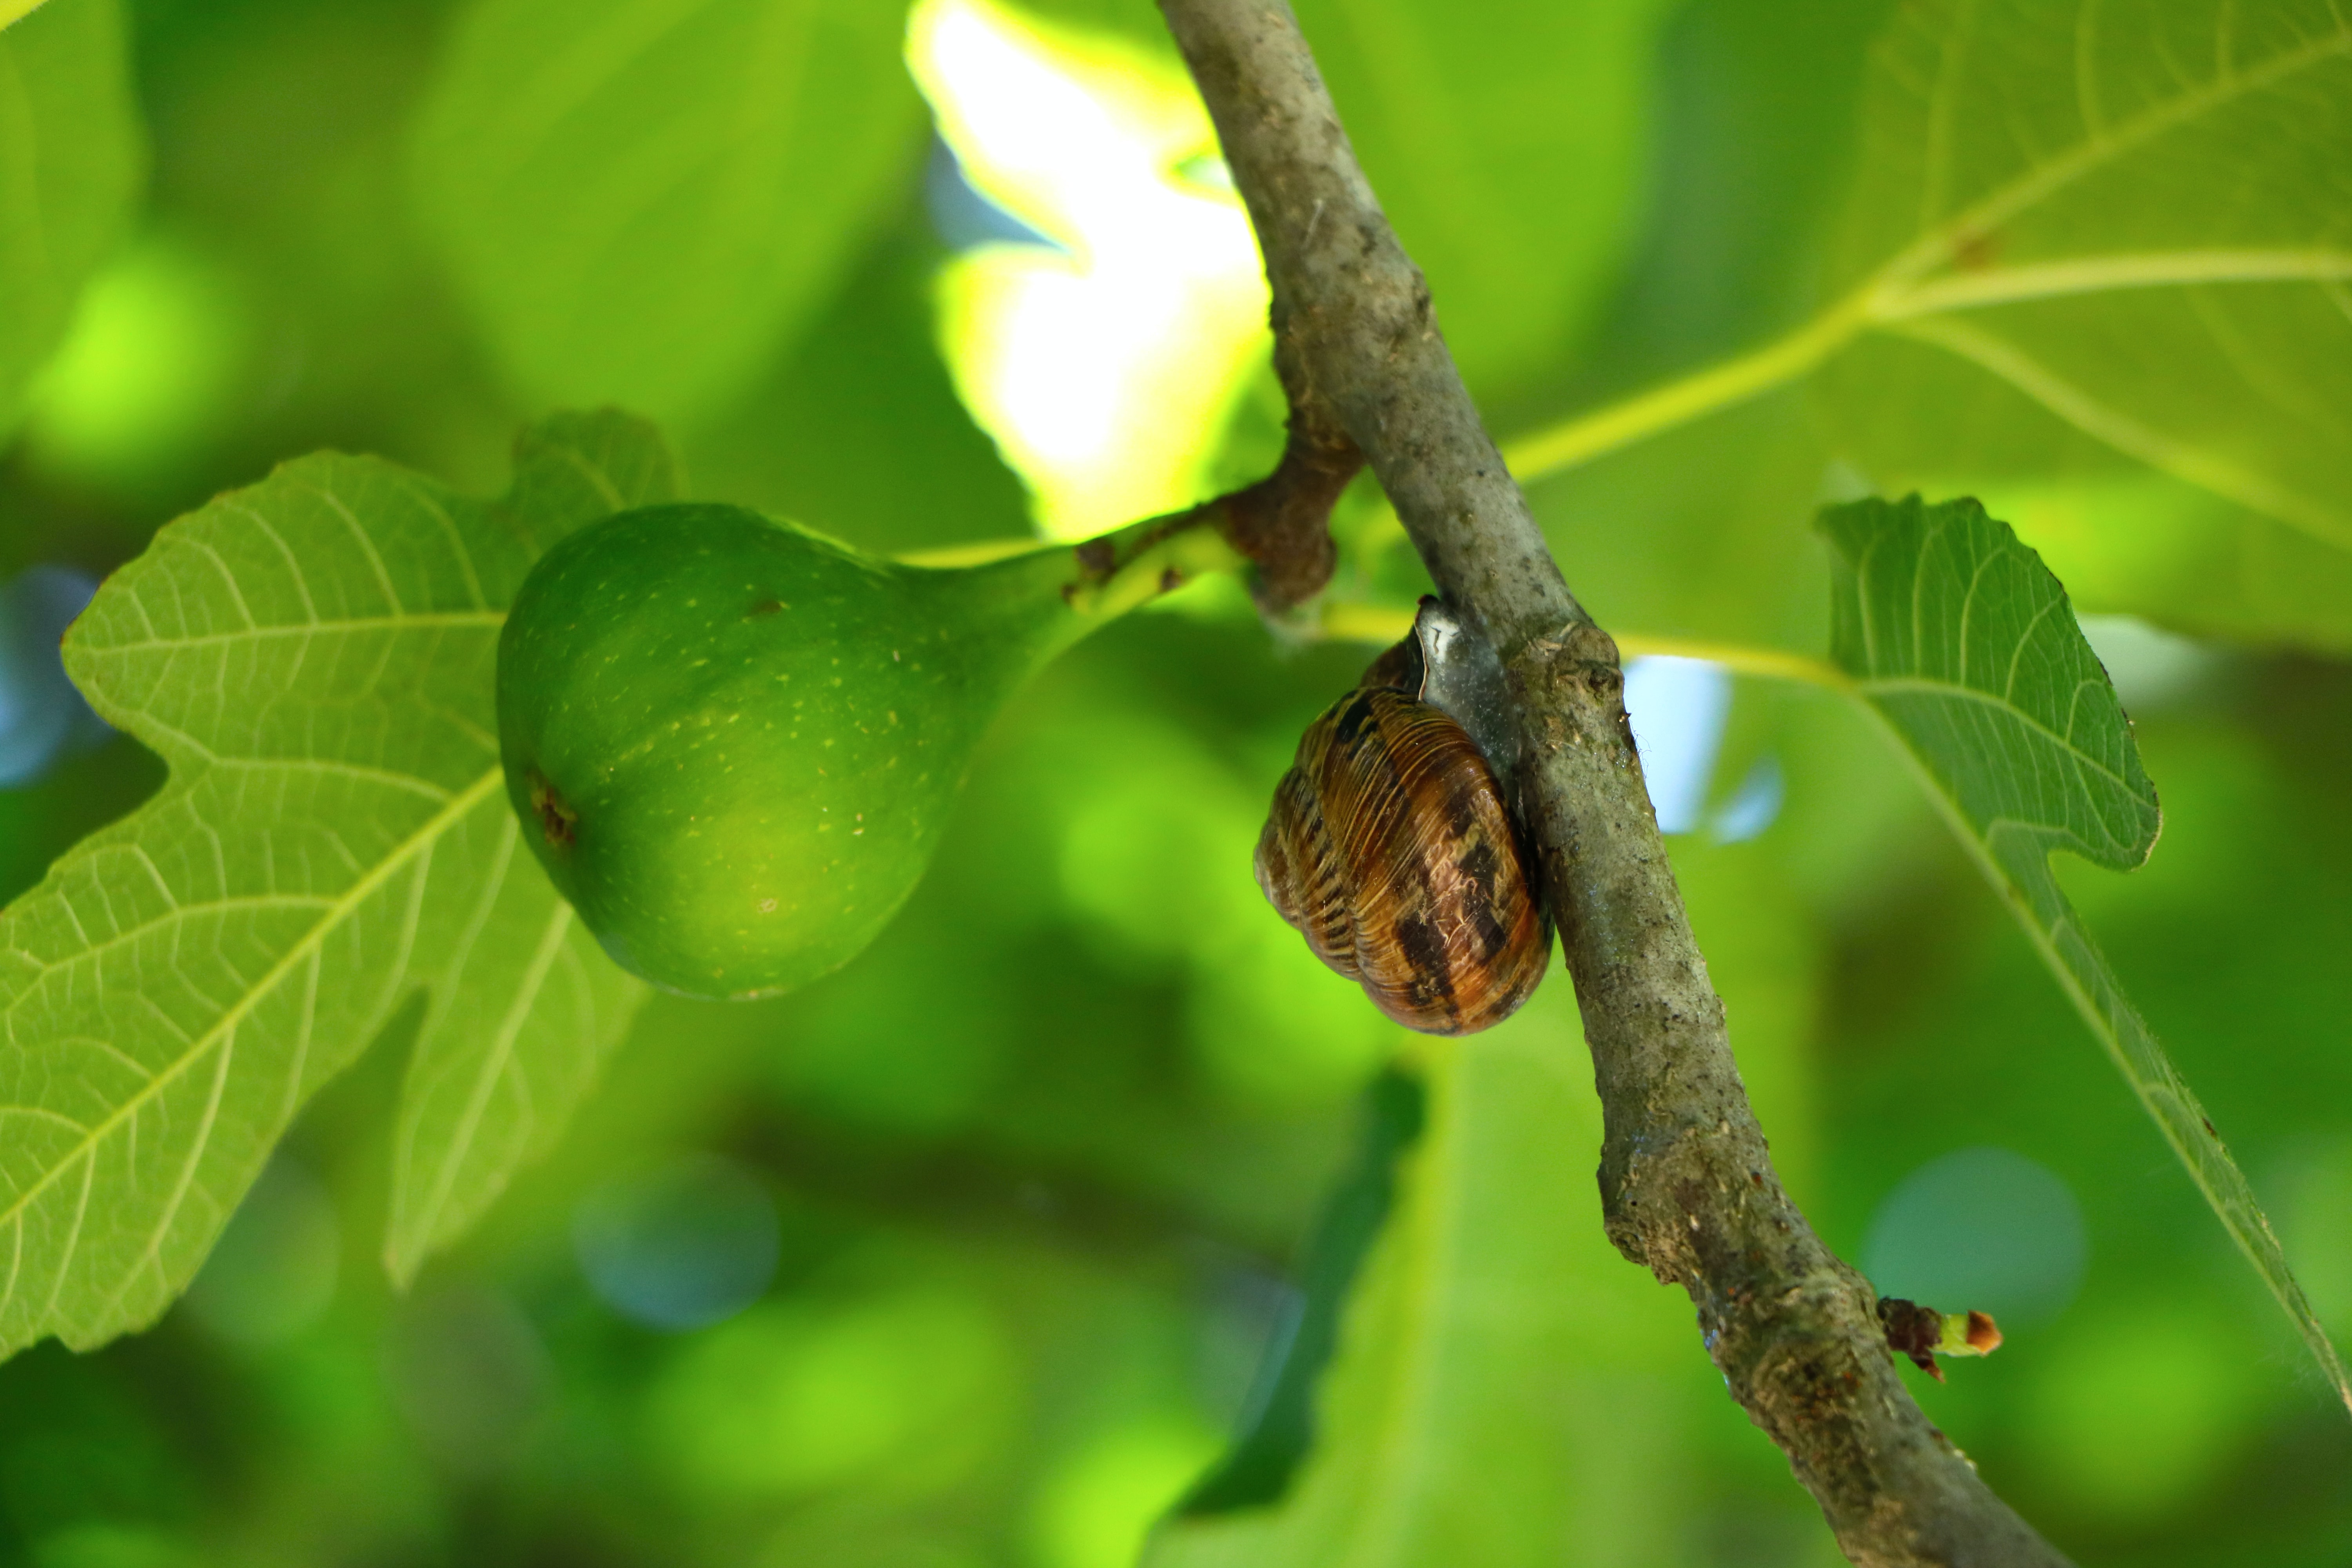 photo of brown snail on tree trunk